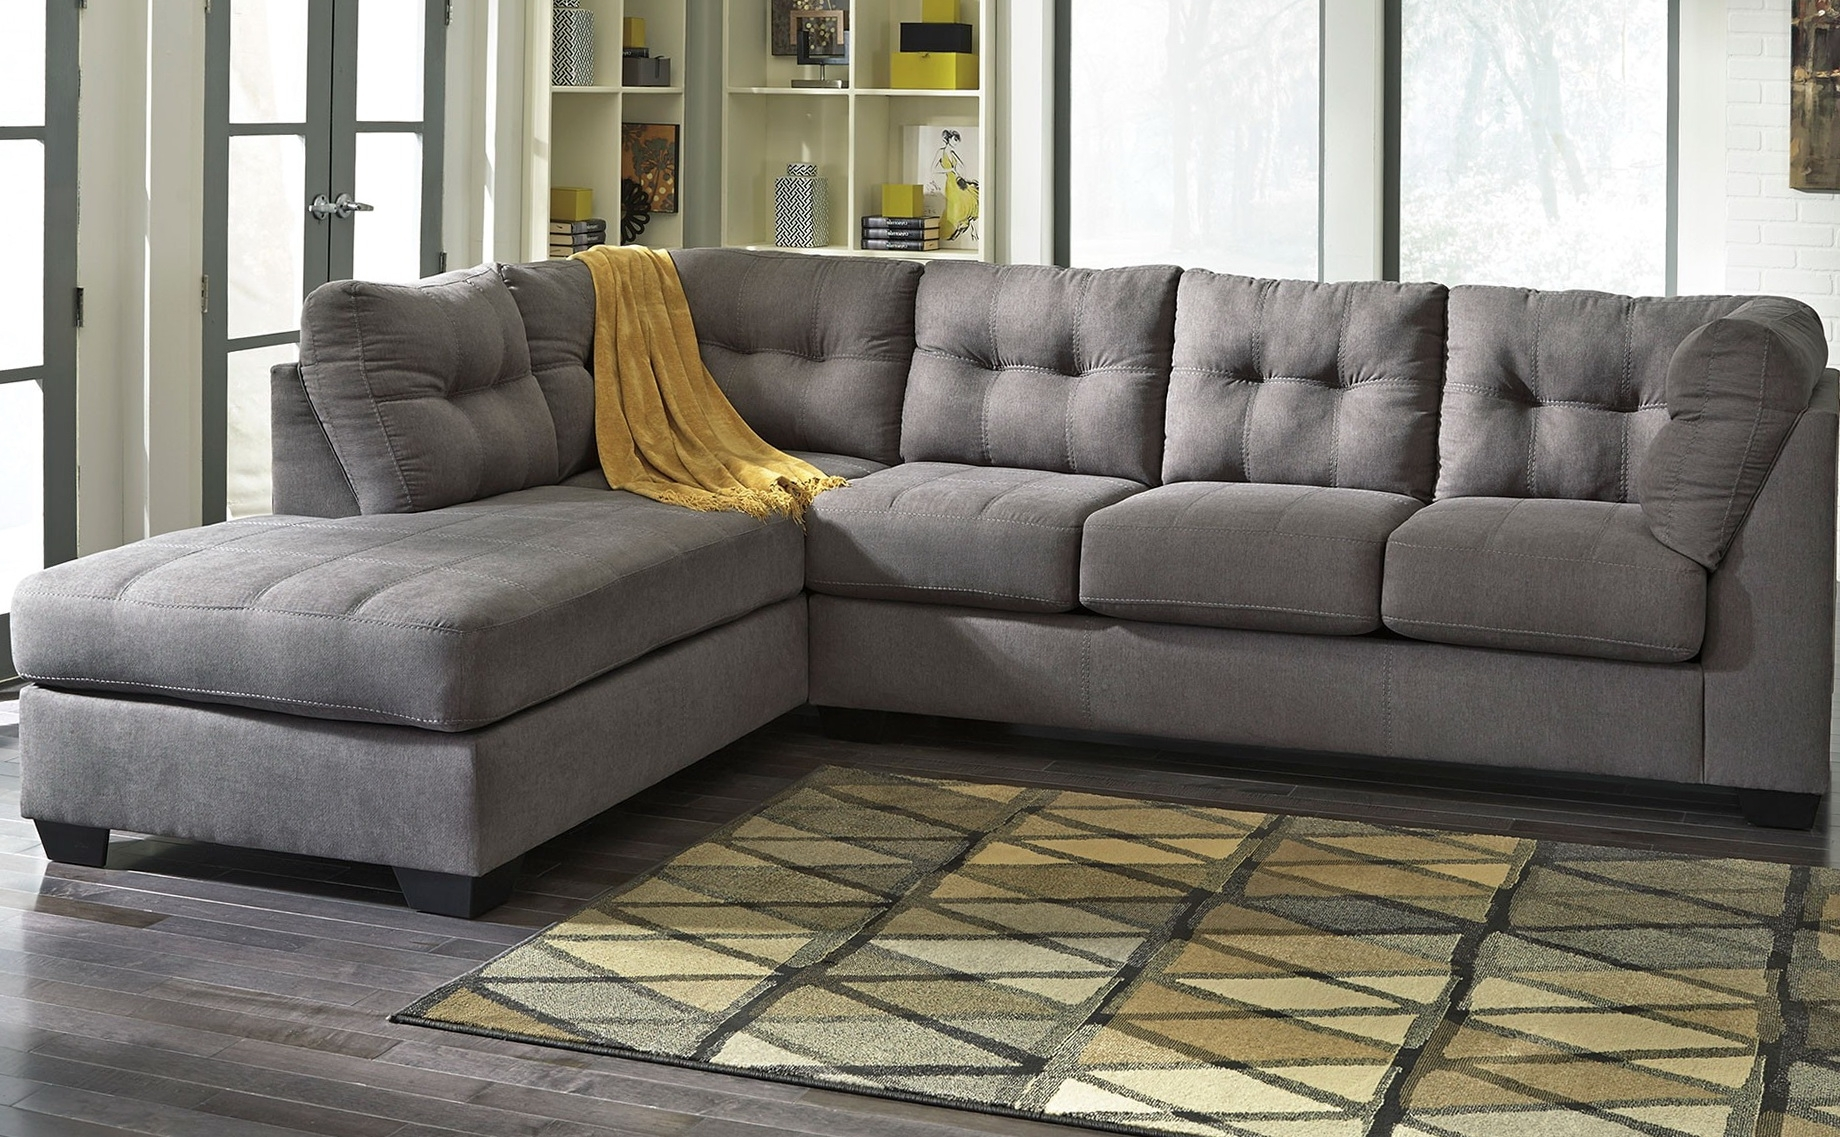 Well Known Perfect Grey Sectional Sofa With Chaise 31 For Your Modern Sofa Regarding Grey Chaise Sofas (View 15 of 15)